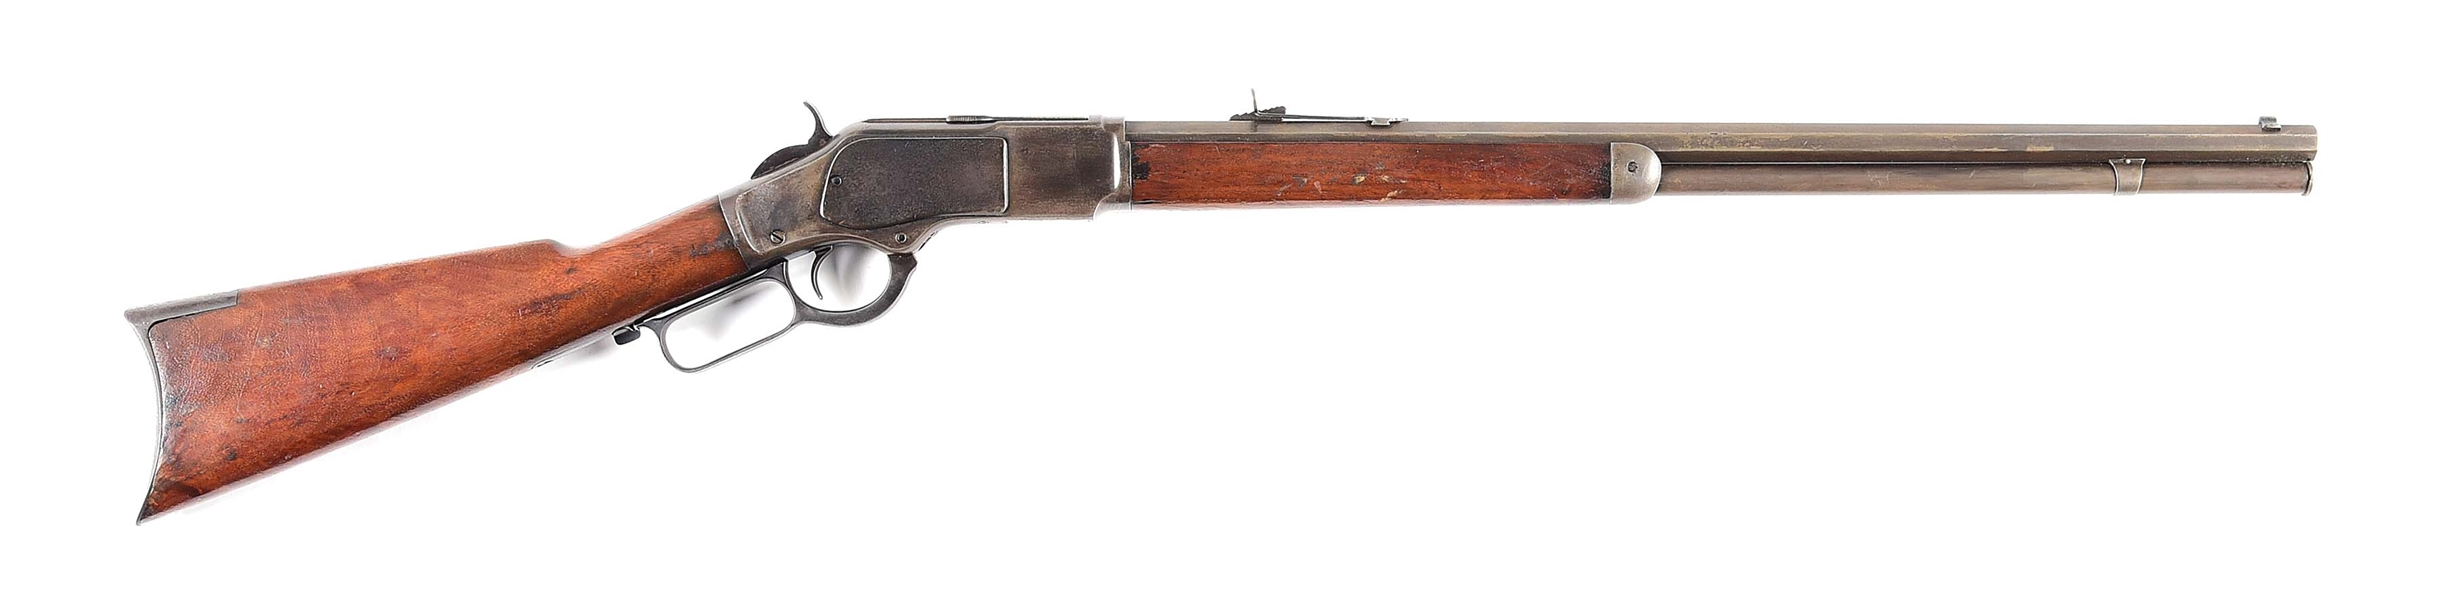 (A) WINCHESTER 1873 .22 CALIBER LEVER ACTION RIFLE.